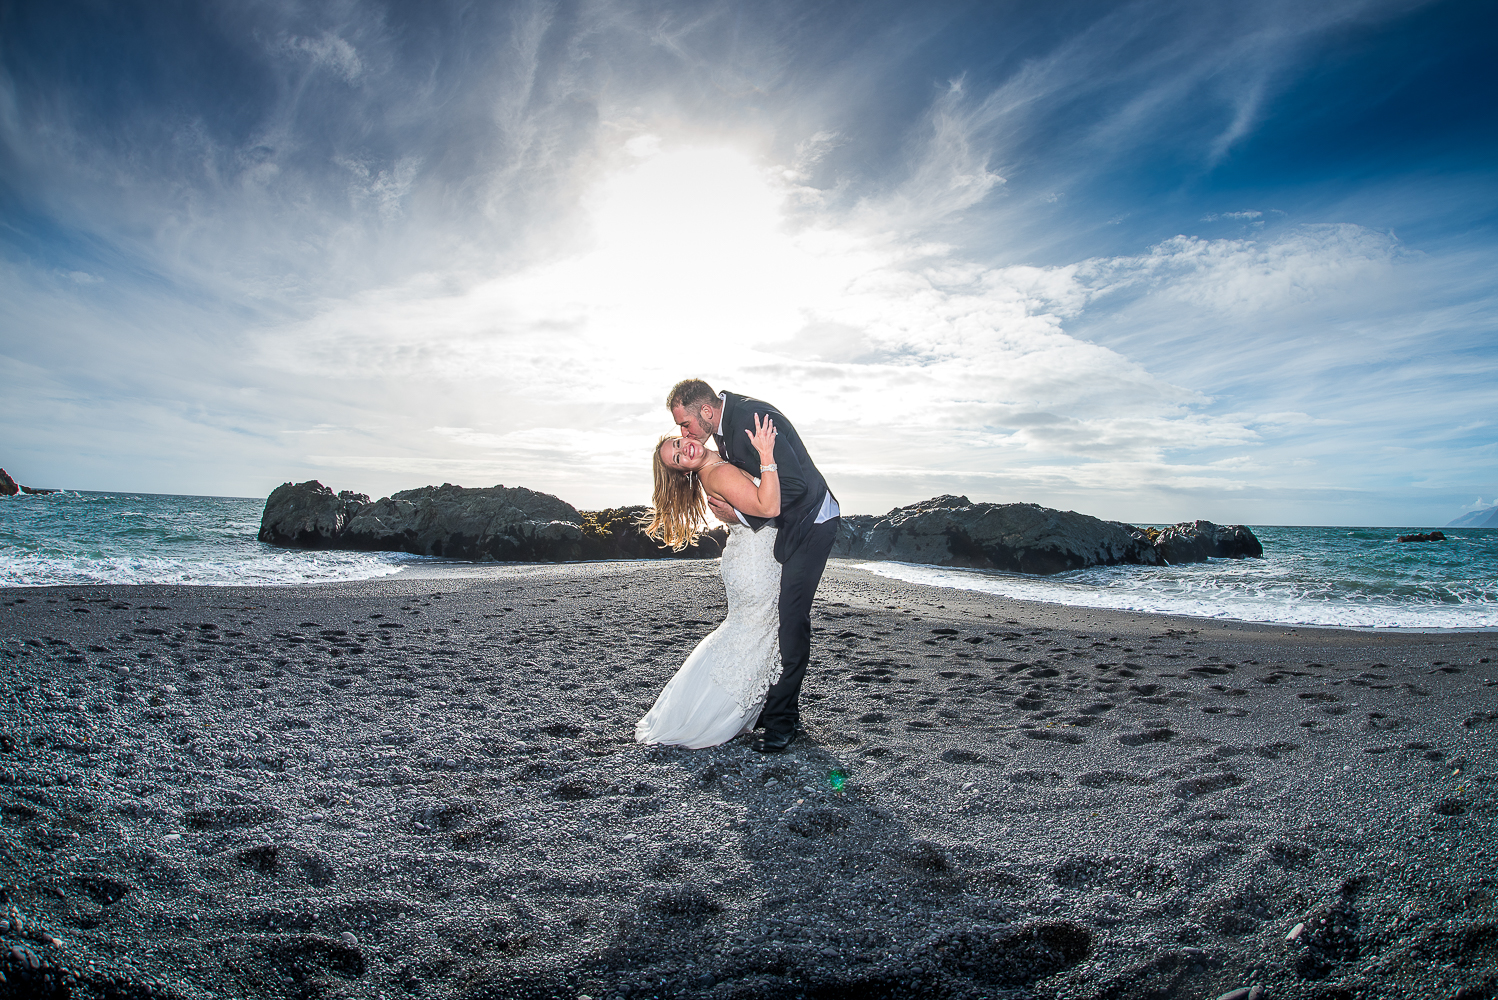 Shelter Cove-Intimate Destination beach Wedding-Parky's Pics Photography-Humboldt County_-55.jpg